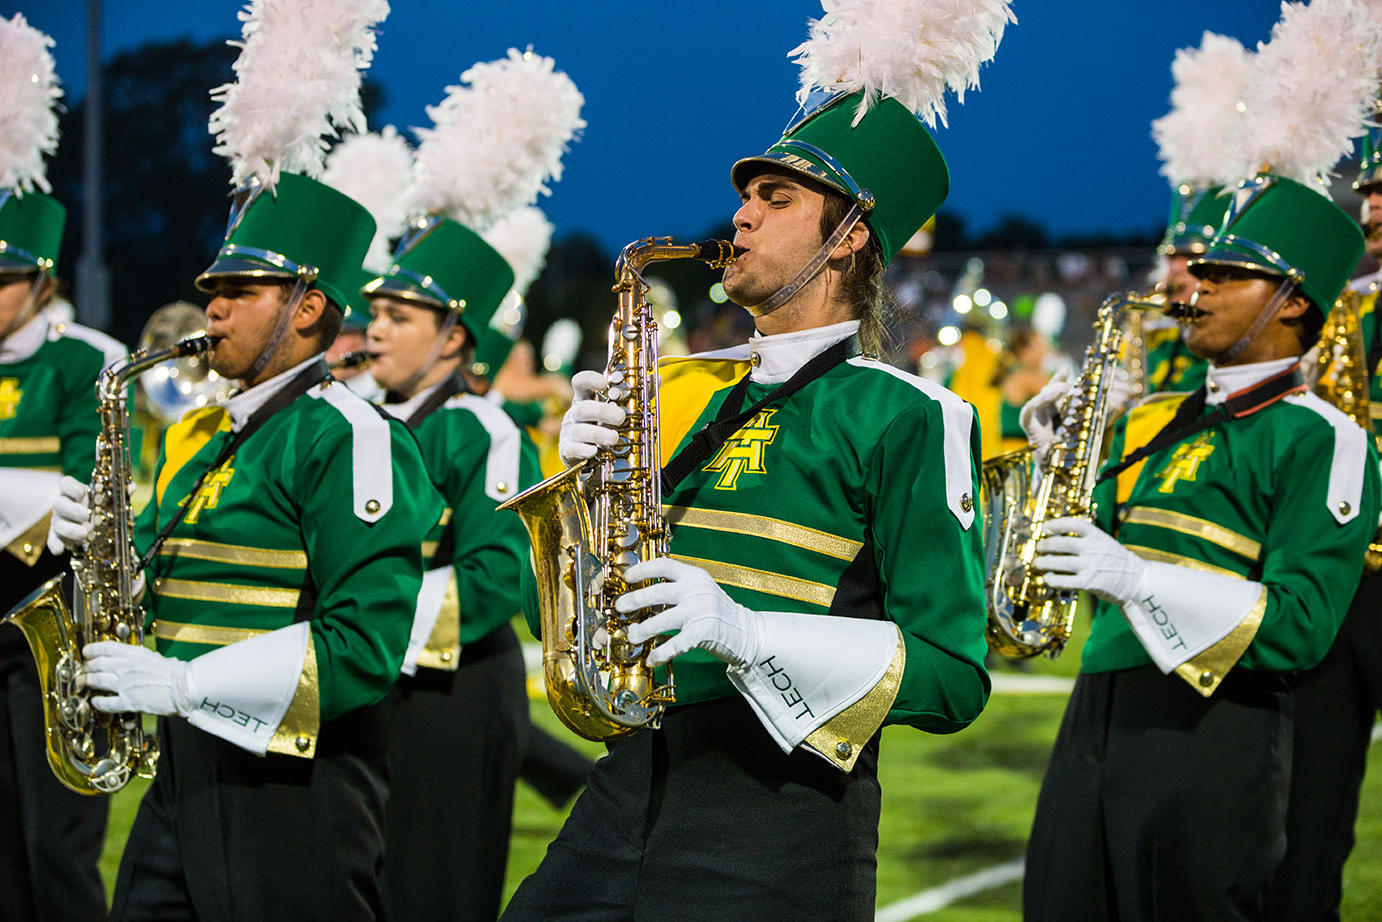 a photo of the award winning ATU marching band, The Band of Distinction